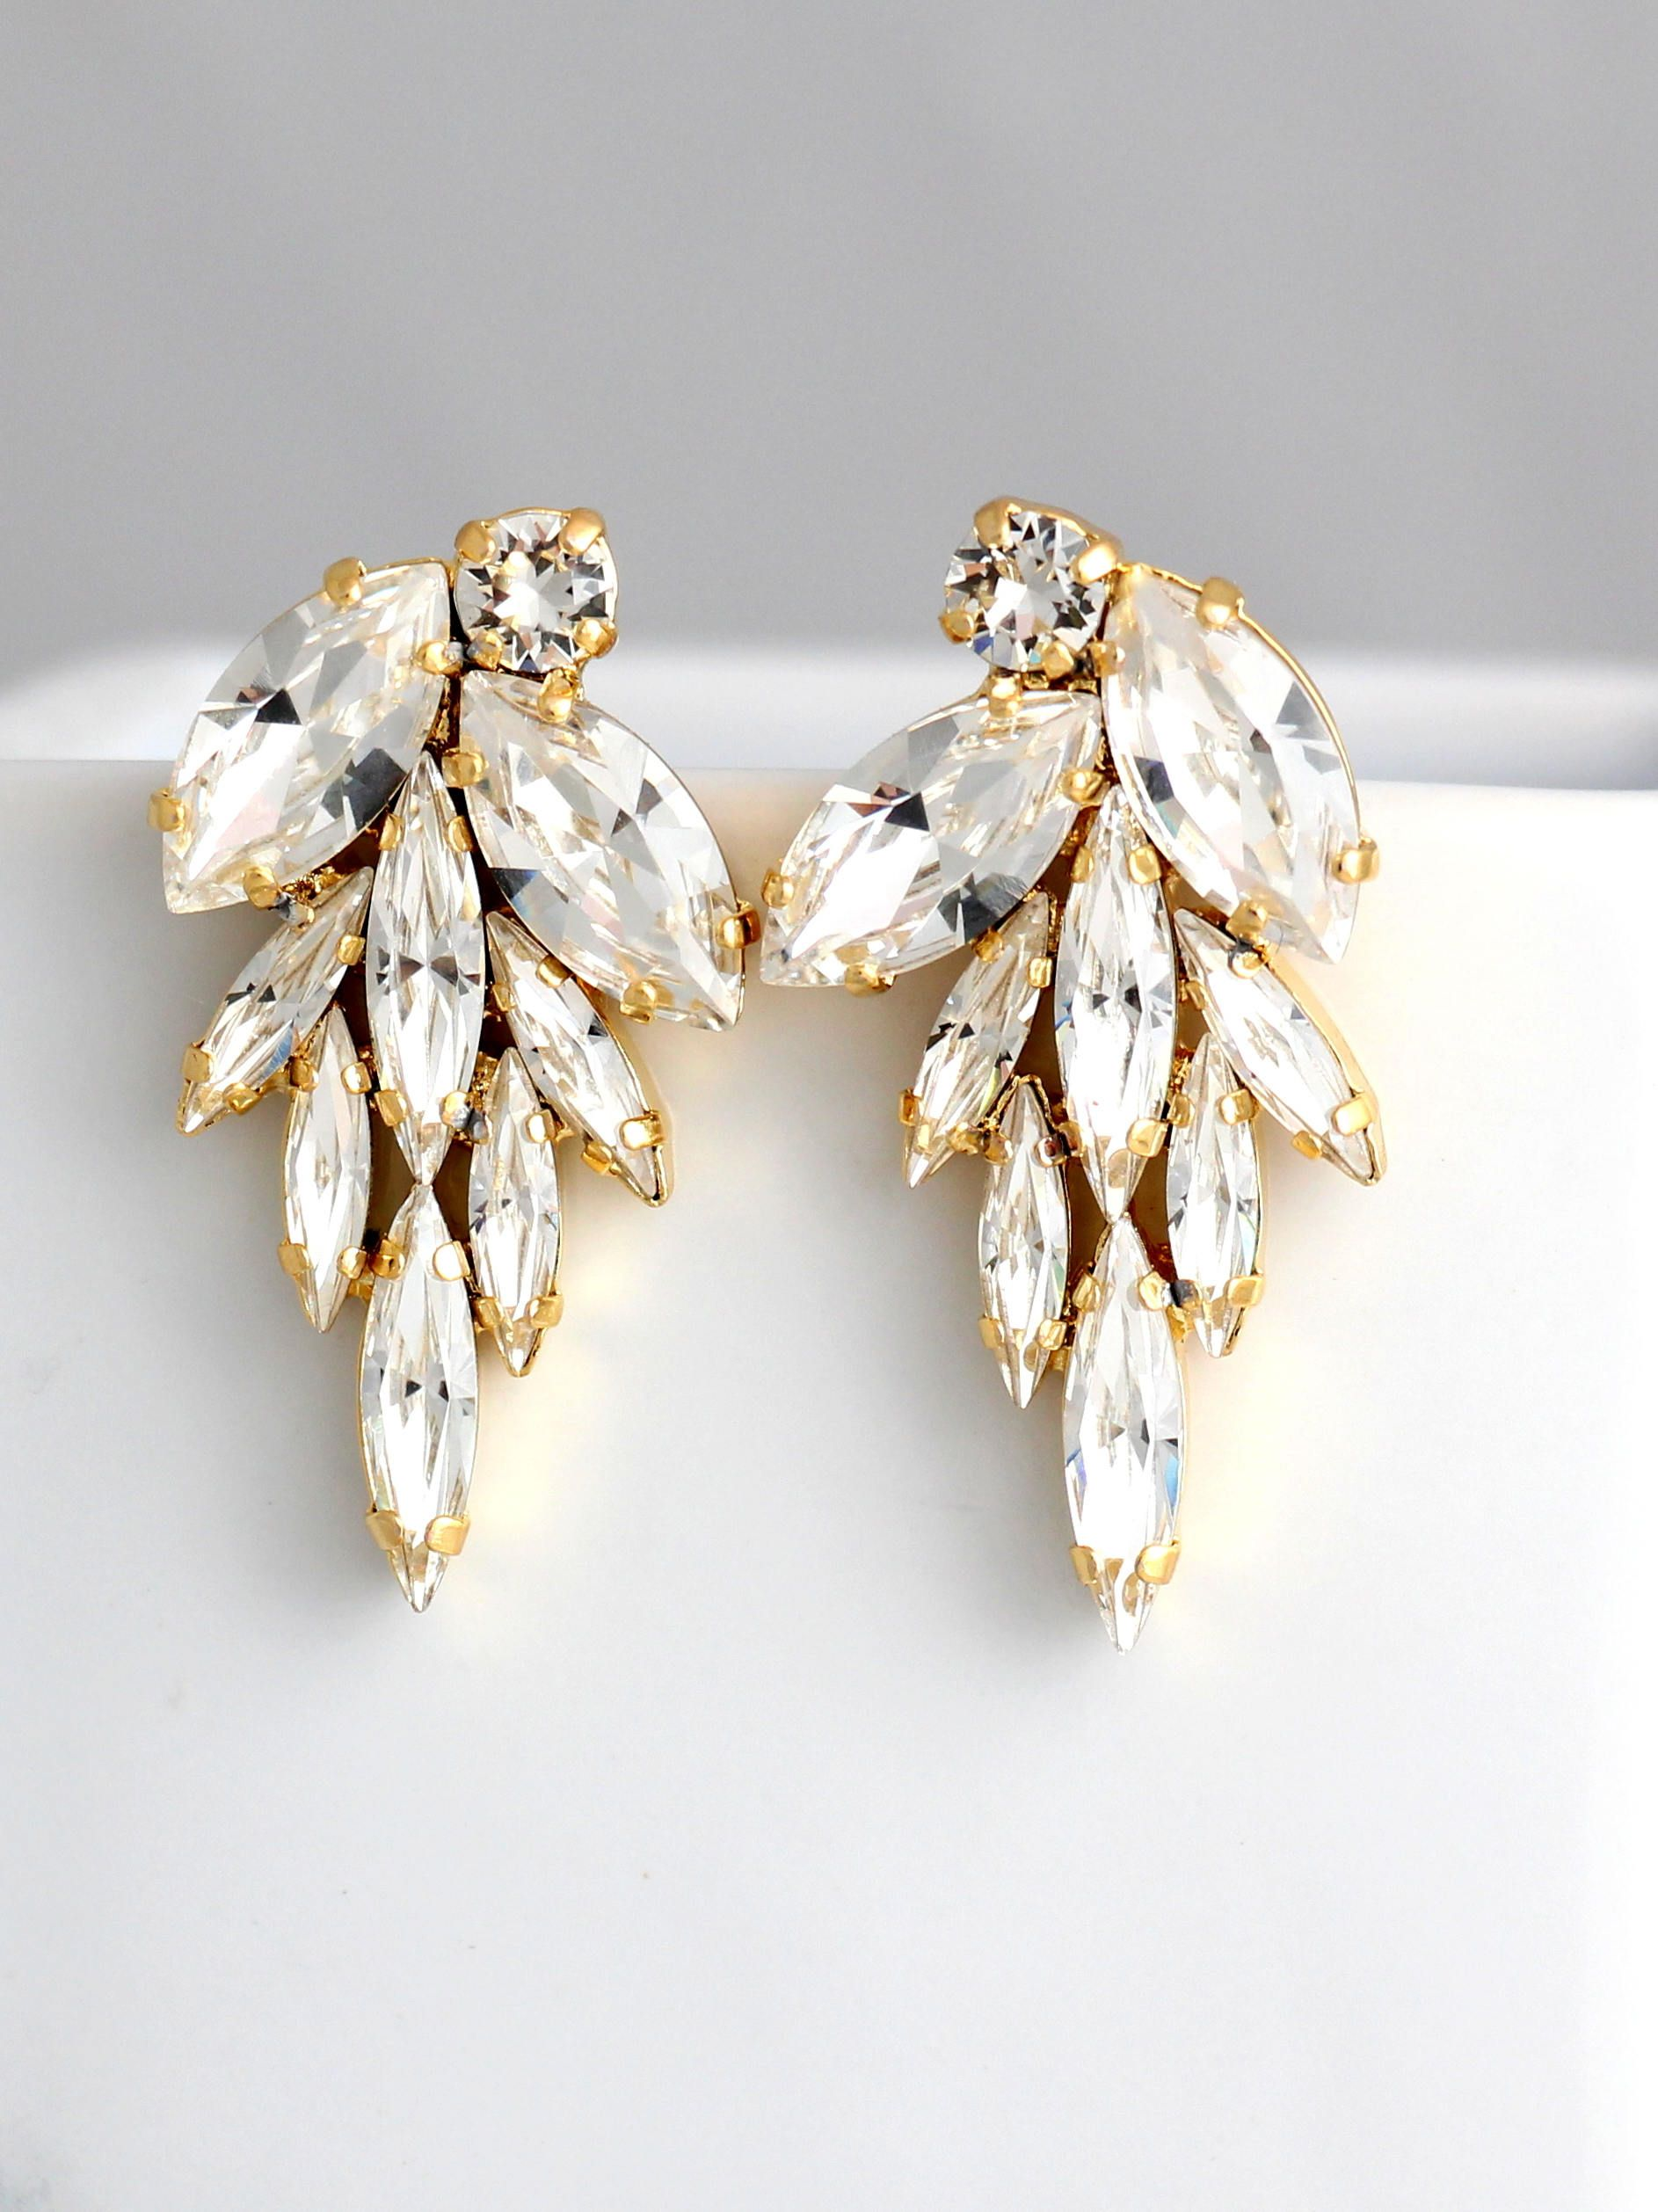 White Crystal Bridal Statement Earrings Silver Wedding Jewelry Swarovski Chandelier Trending